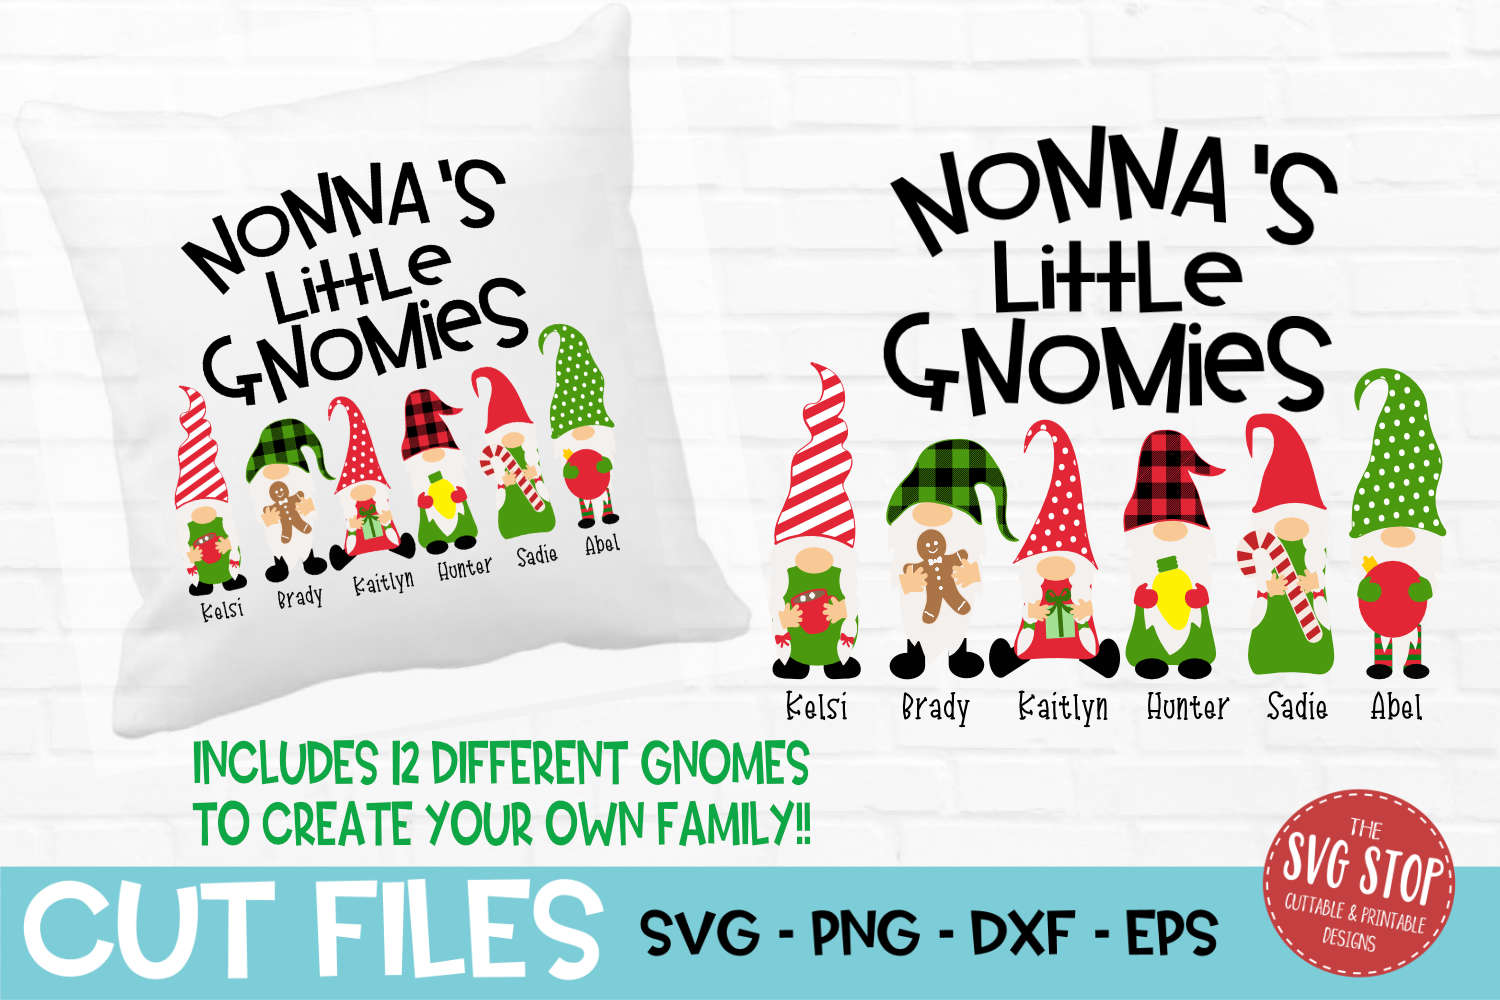 Nonna's Little Gnomies Christmas SVG, PNG, DXF, EPS example image 1